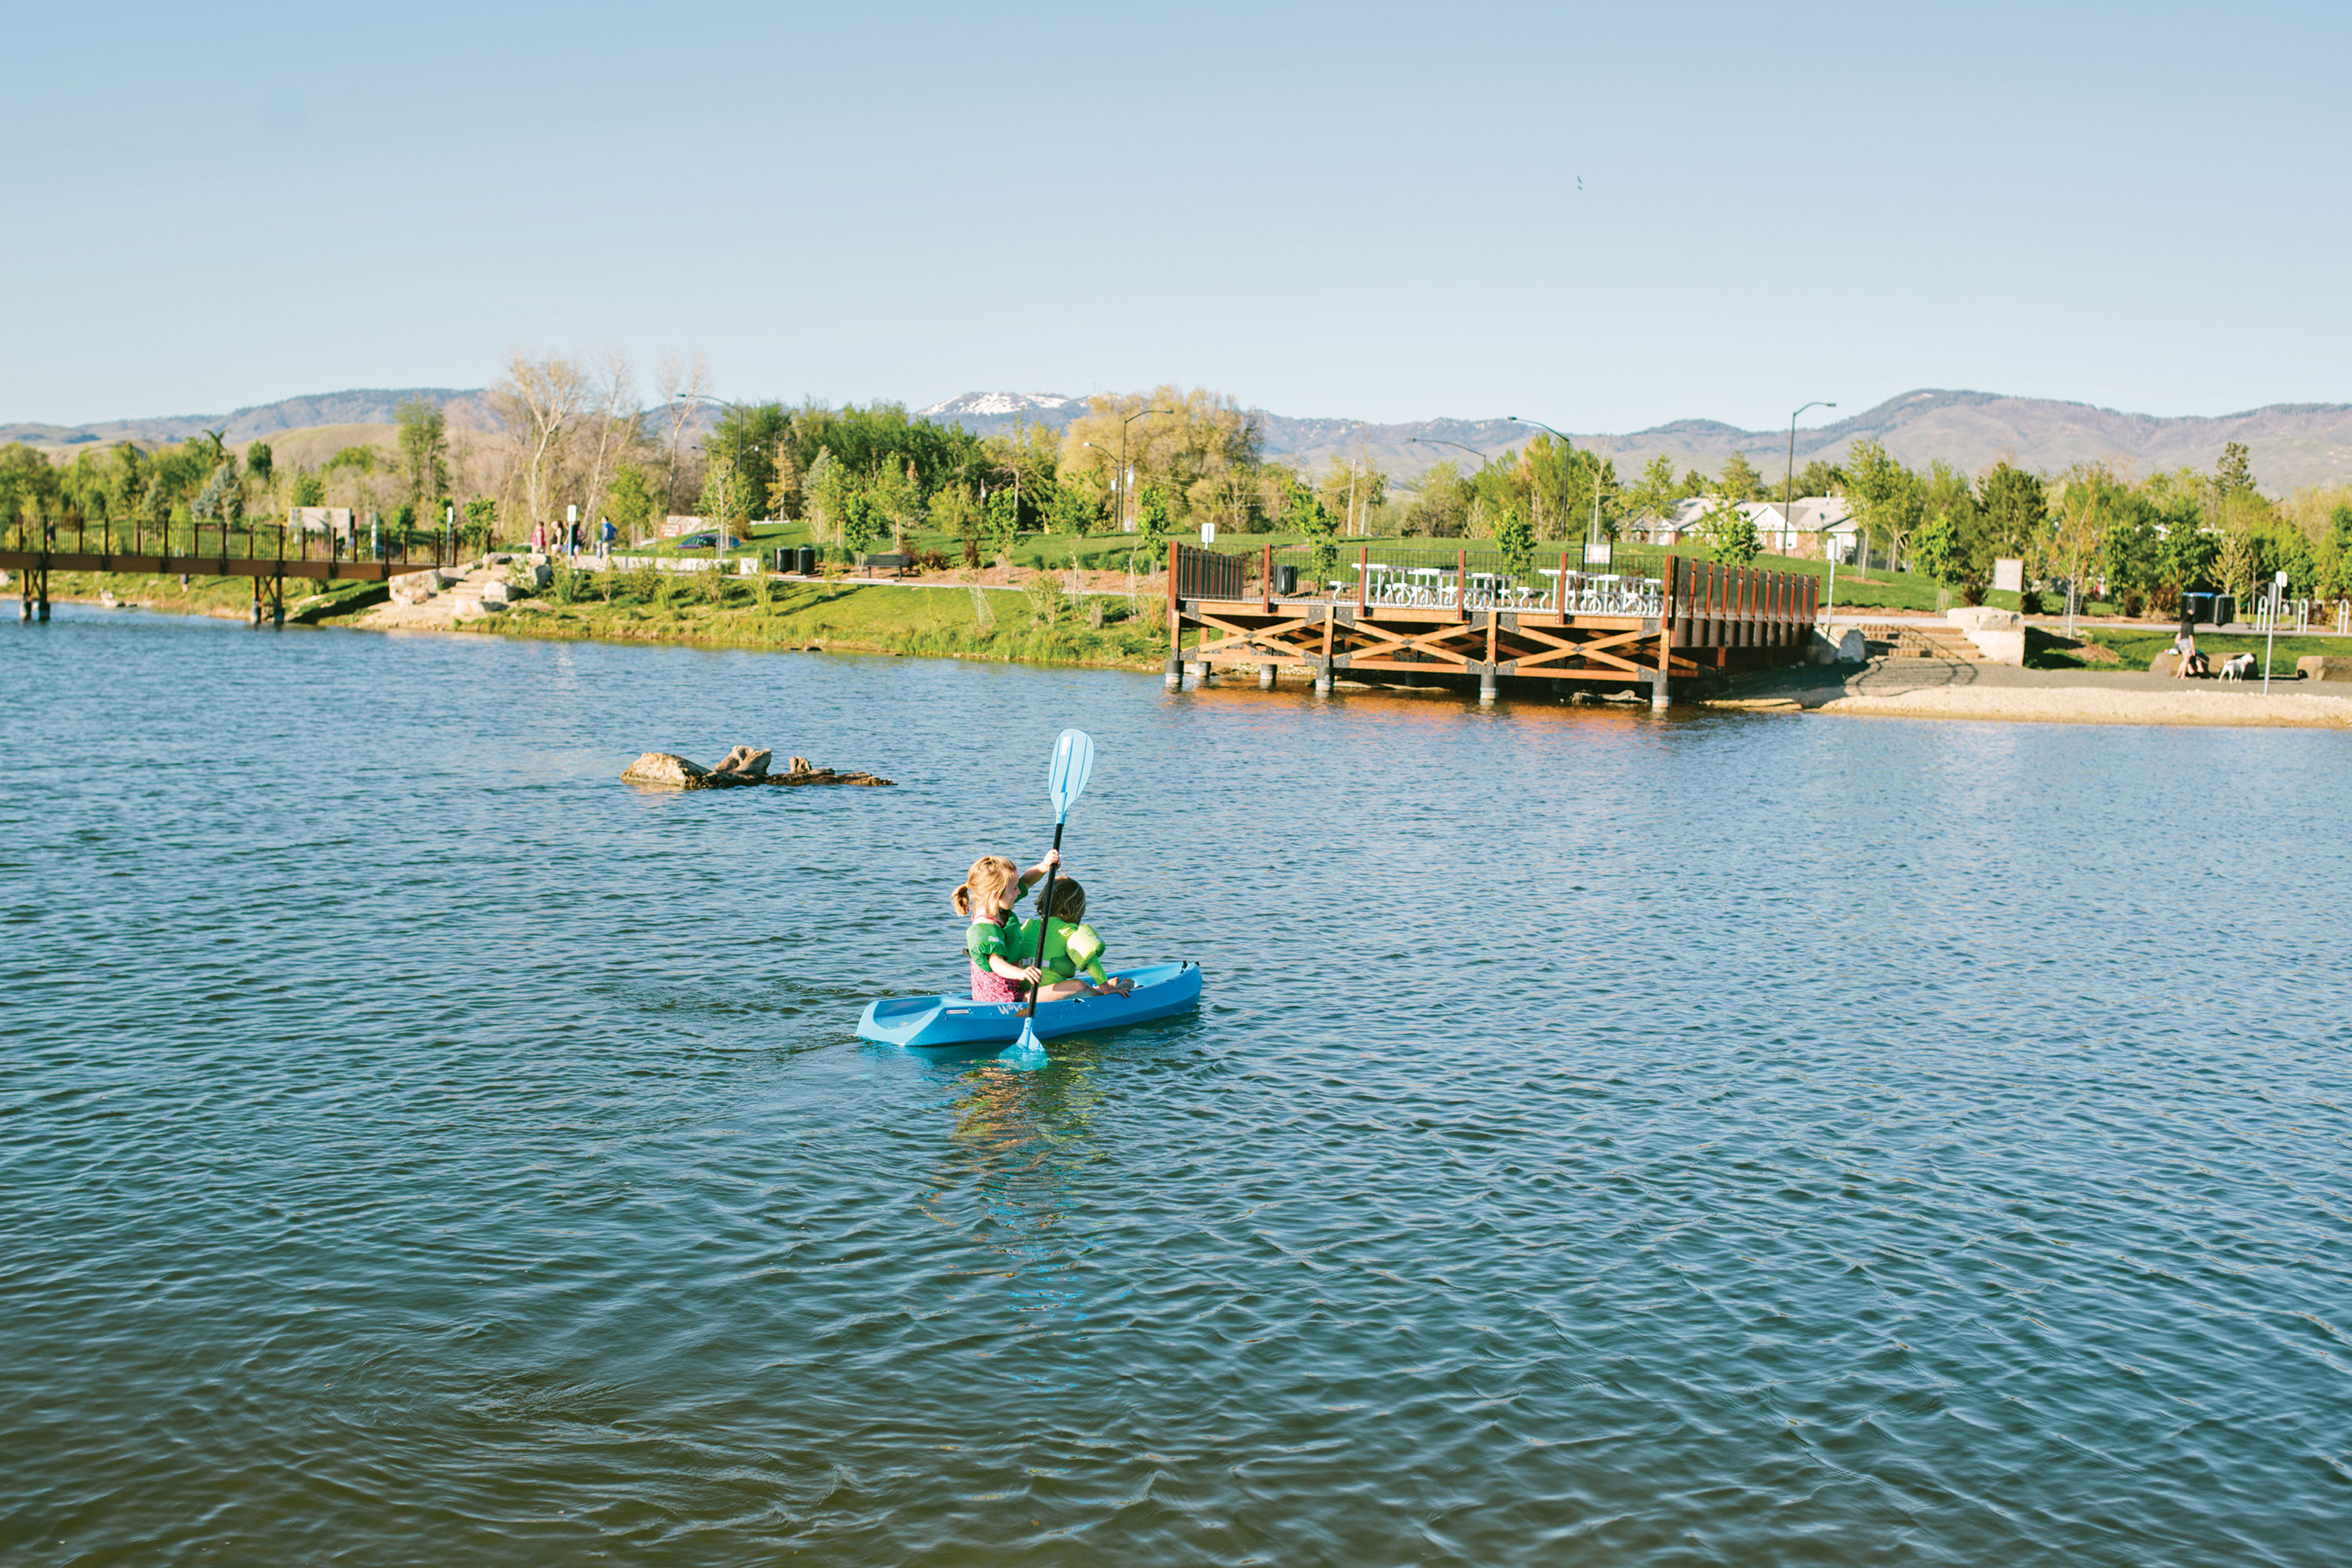 Kayakers at Esther Simplot Park; Photo by Chad Chase